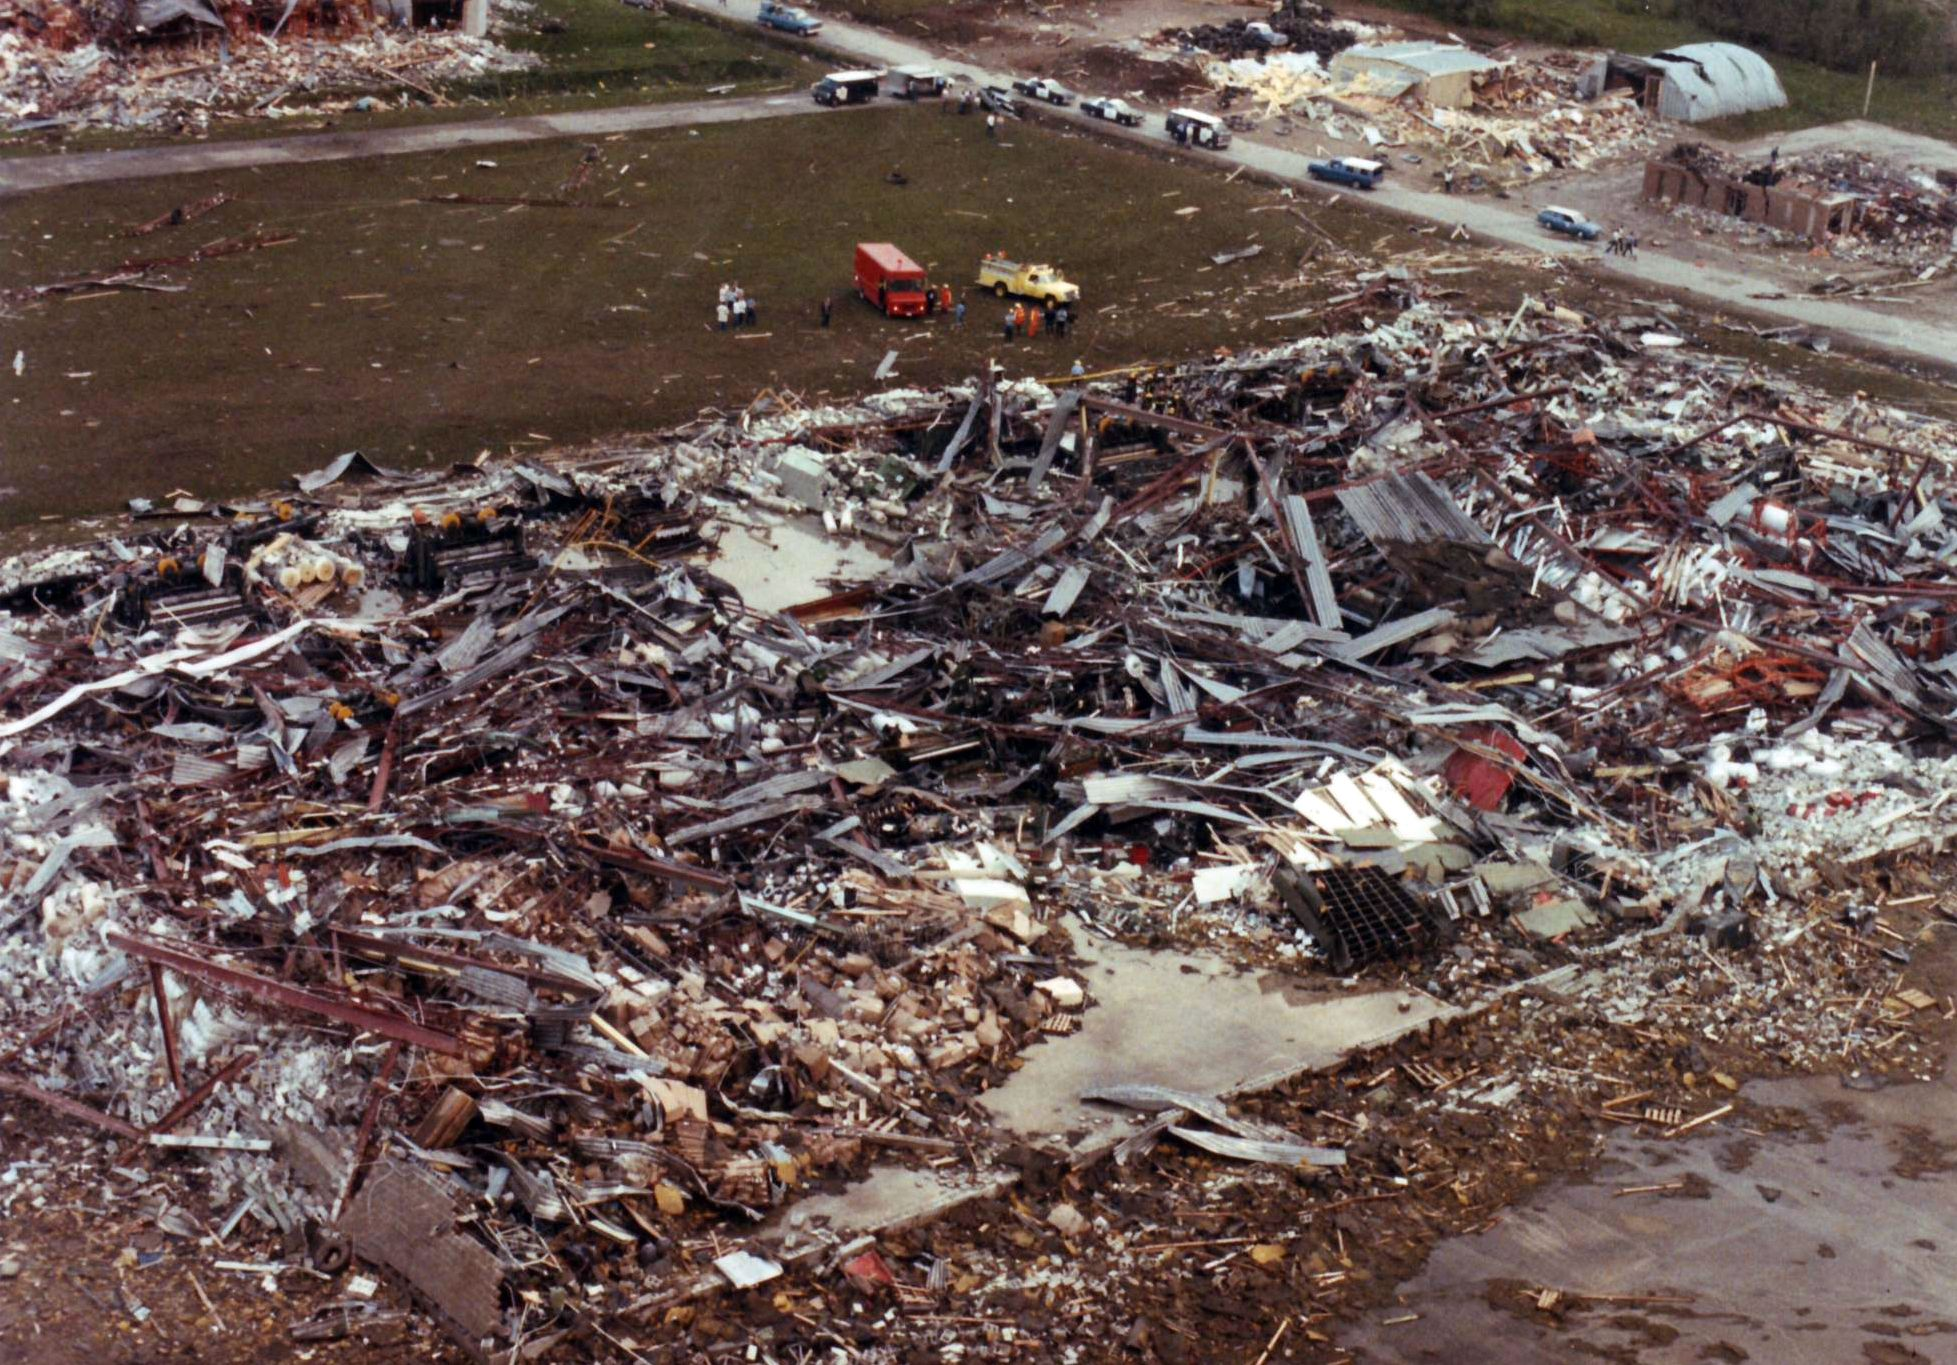 1985- a total of forty-one tornadoes had occurred in the United States and Canada. Twenty-one tornadoes tracked across Northeast Ohio and Northwest Pennsylvania during the evening of May 31st. Of these twenty-one, one was rated an F5, and six were rated F4's. Tragically, these tornadoes killed seventy-six people in Ohio and Pennsylvania.